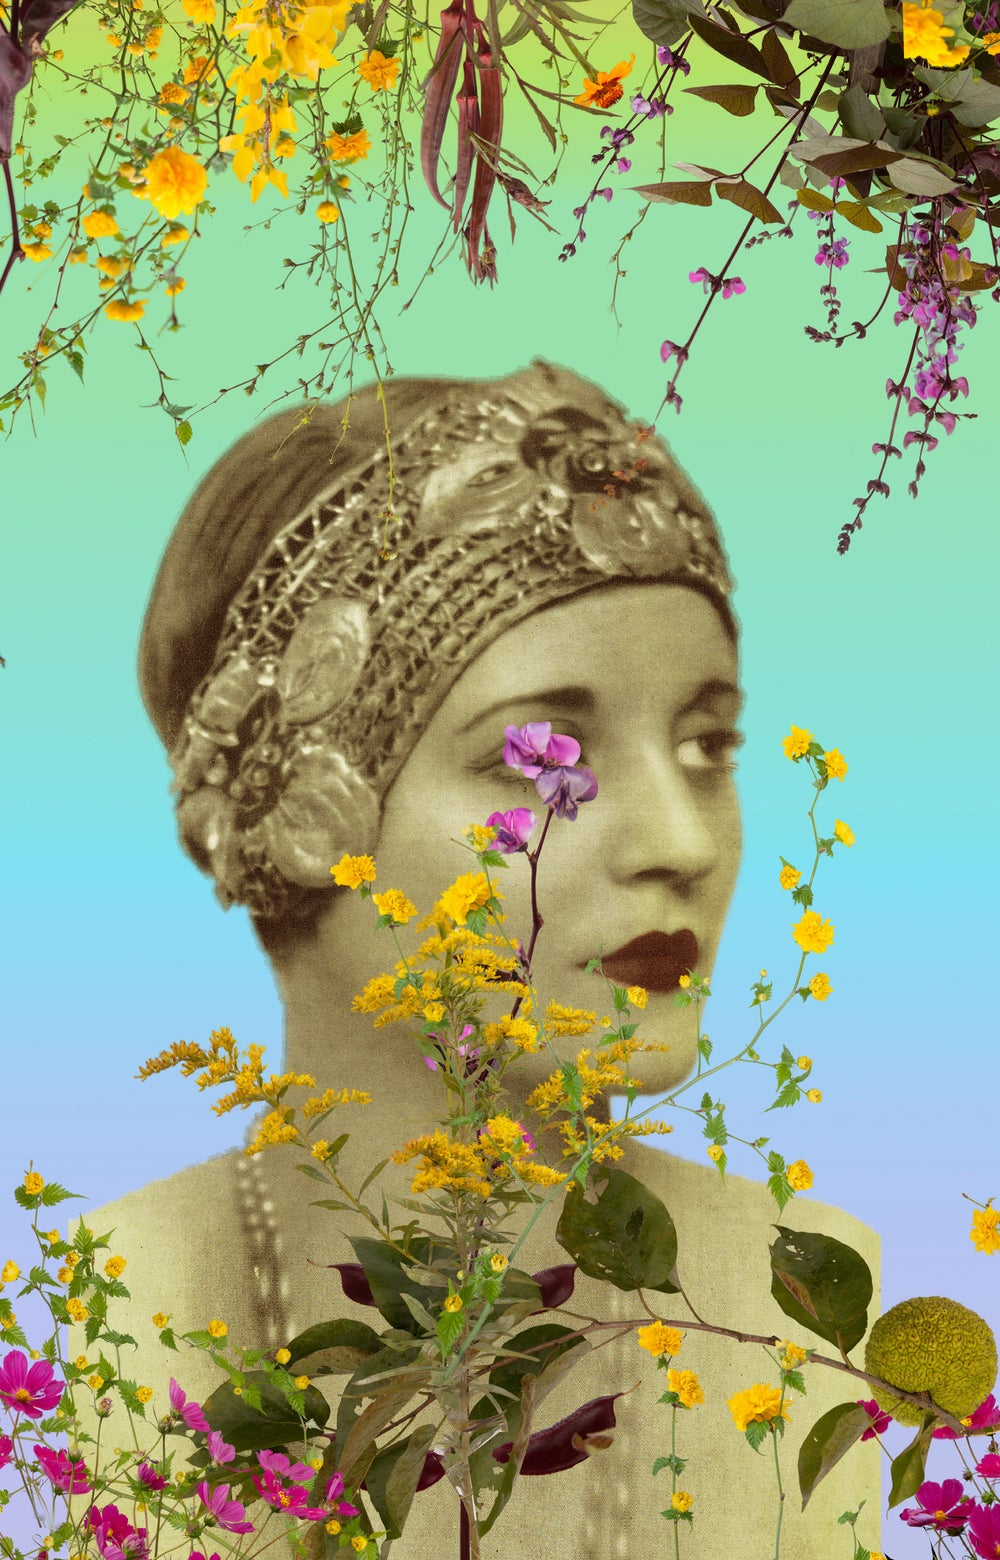 Image of Fallen Fruit - Tallulah Bankhead with Flowers